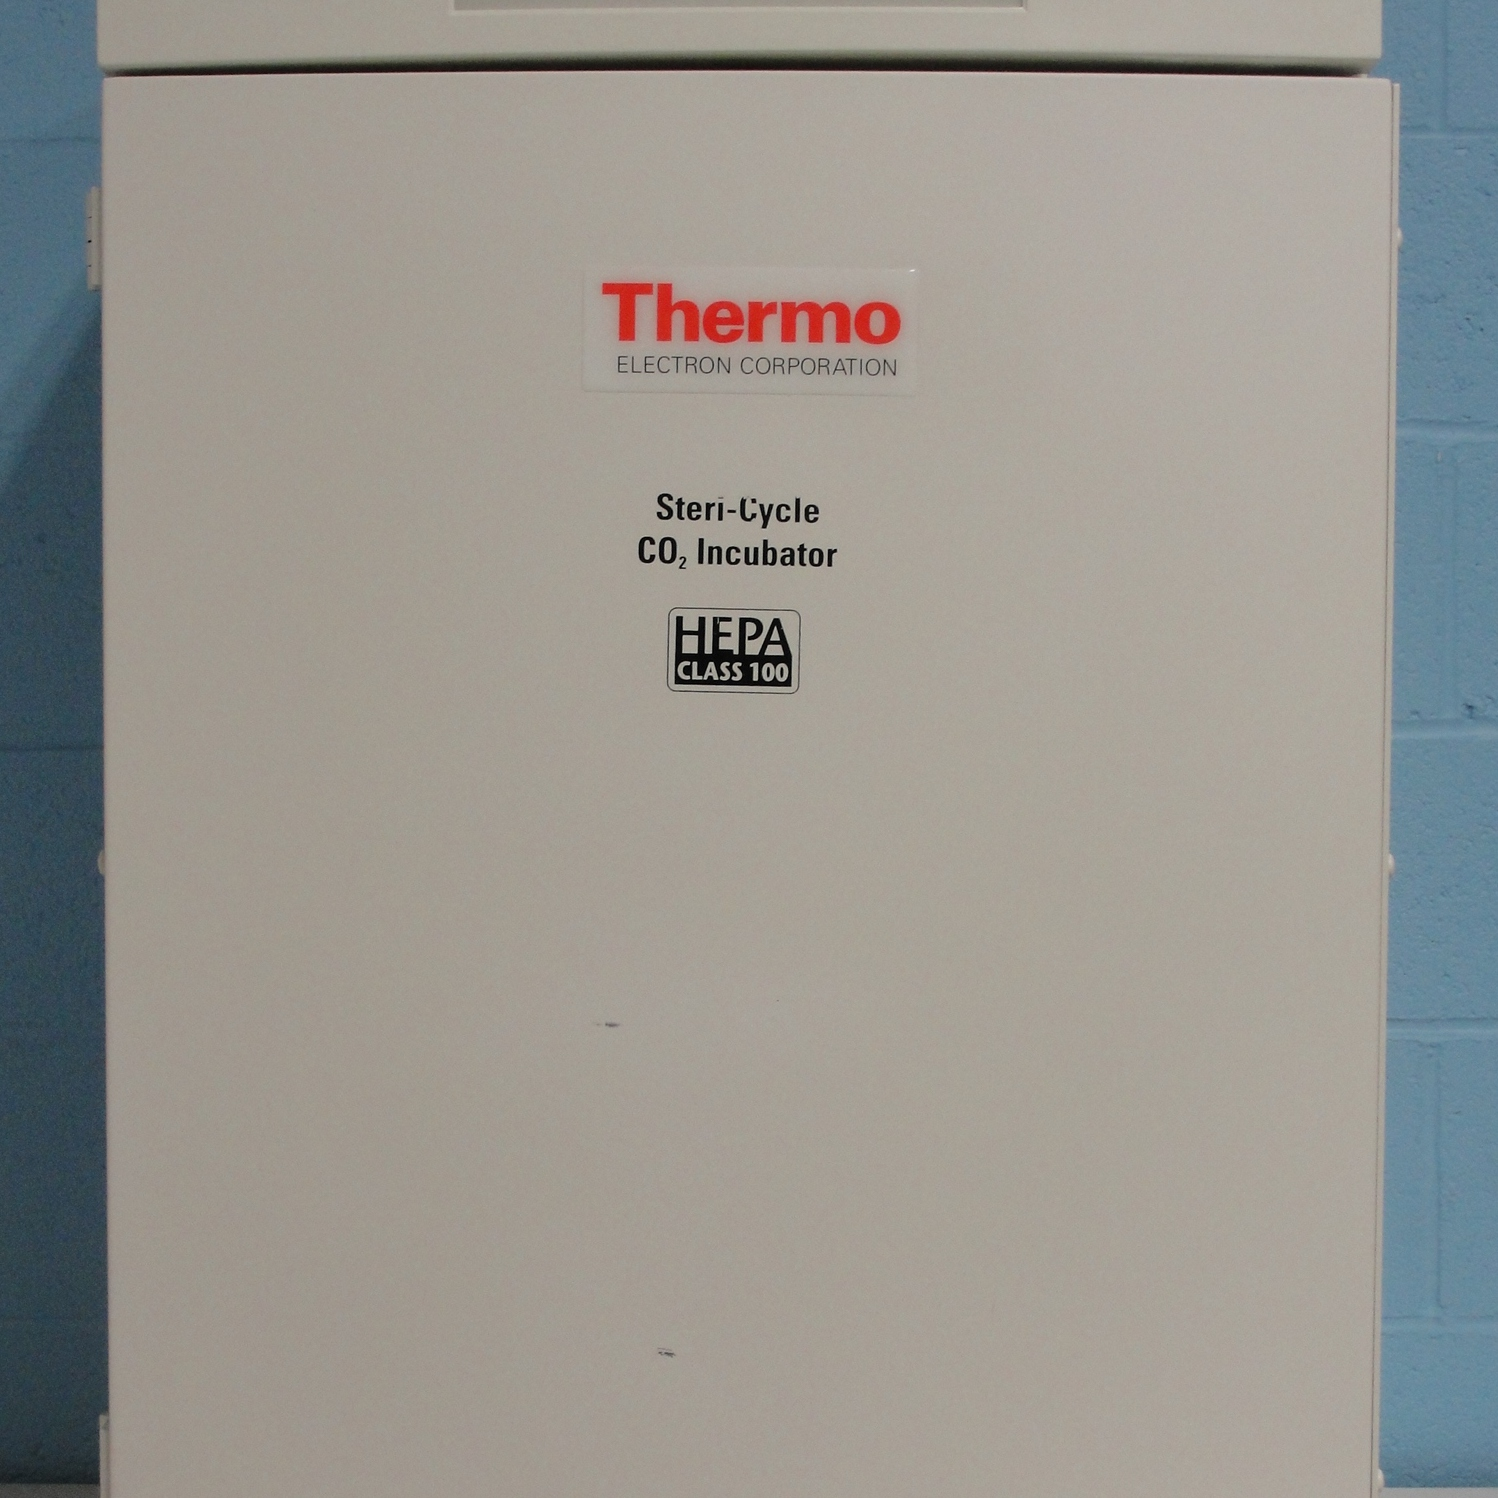 Thermo Electron Corporation Model 370 Series Steri-Cycle CO2 Incubator Image